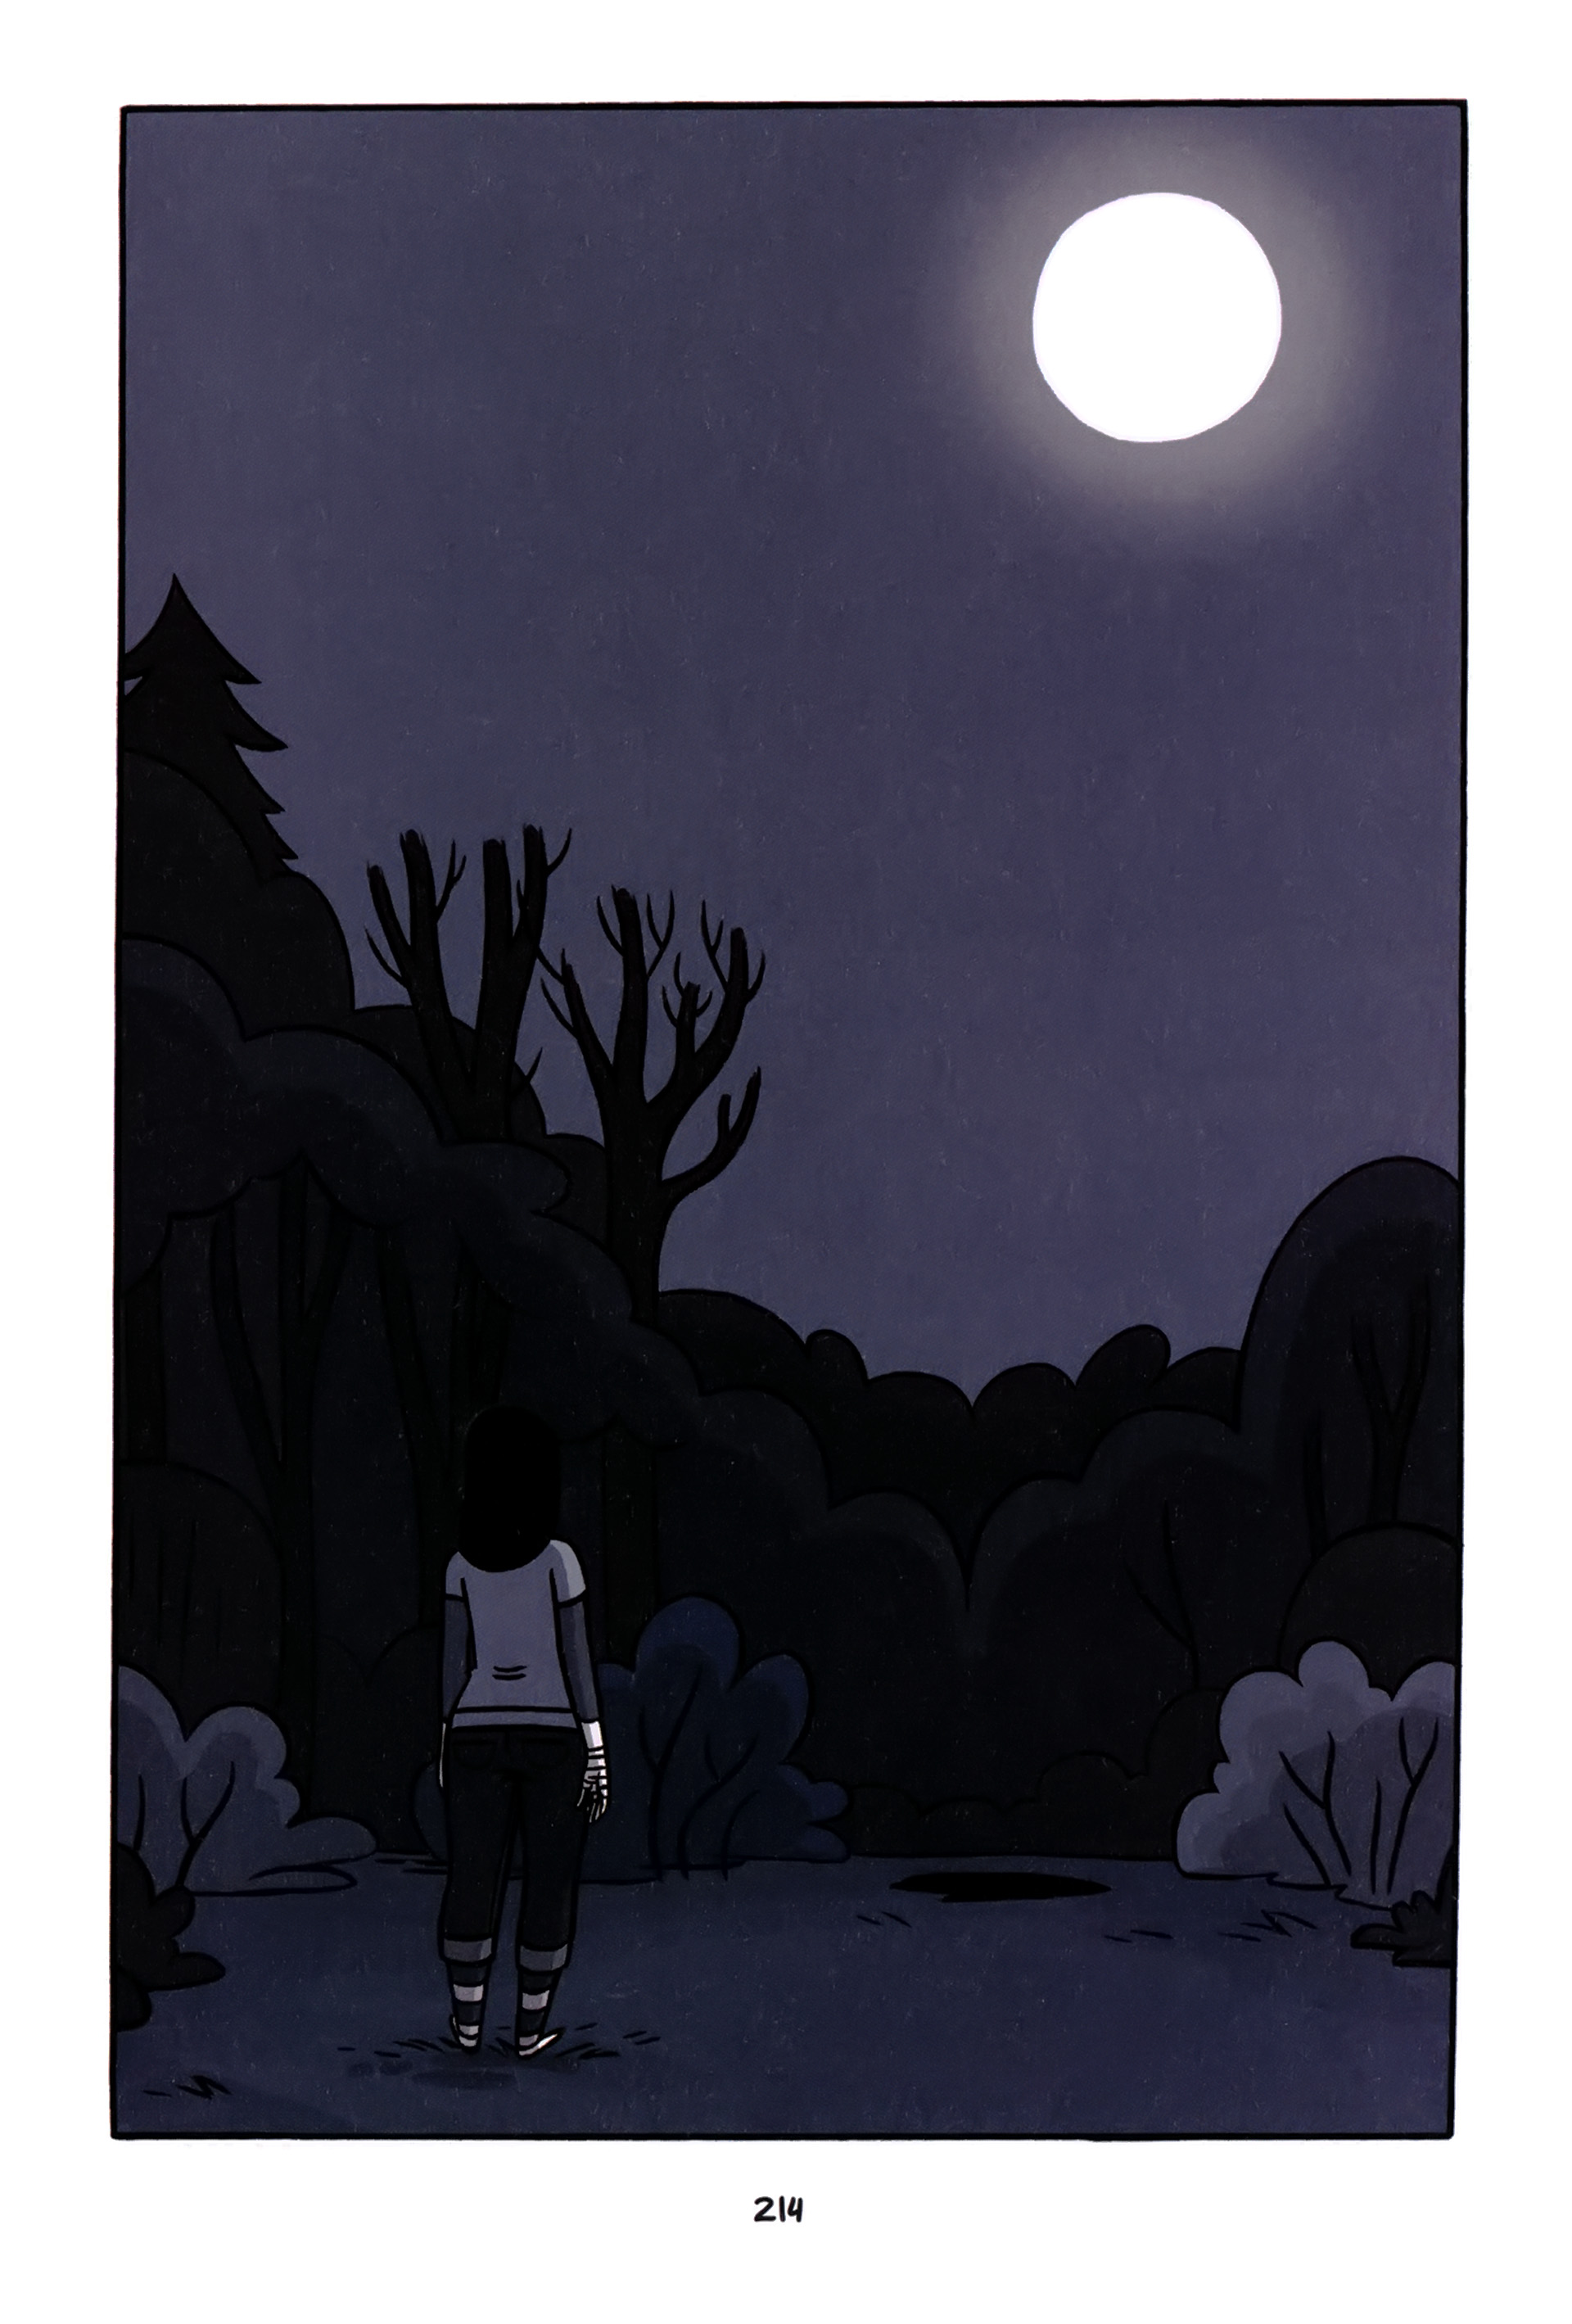 Read online Anya's Ghost comic -  Issue #1 - 215